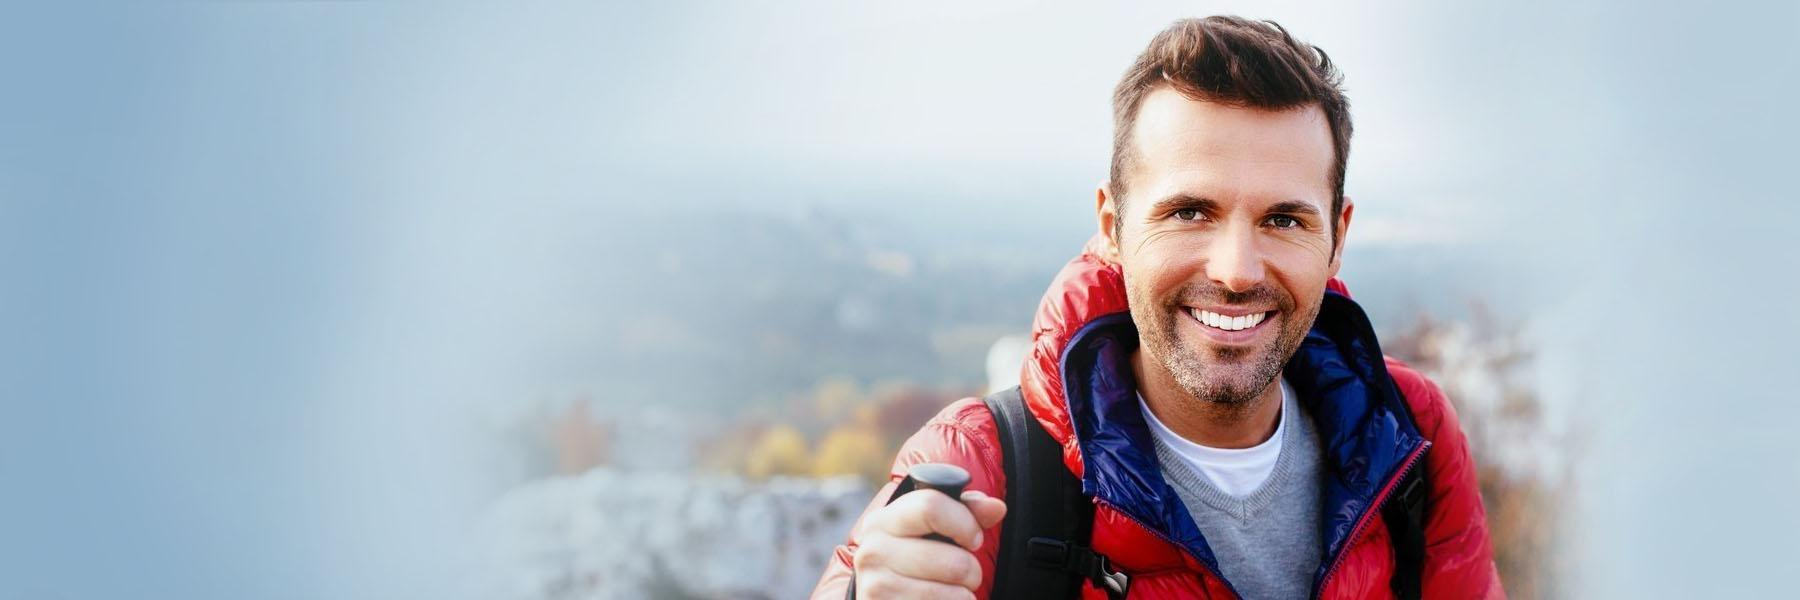 Man Hiking | Clinton Township Periodontal Care